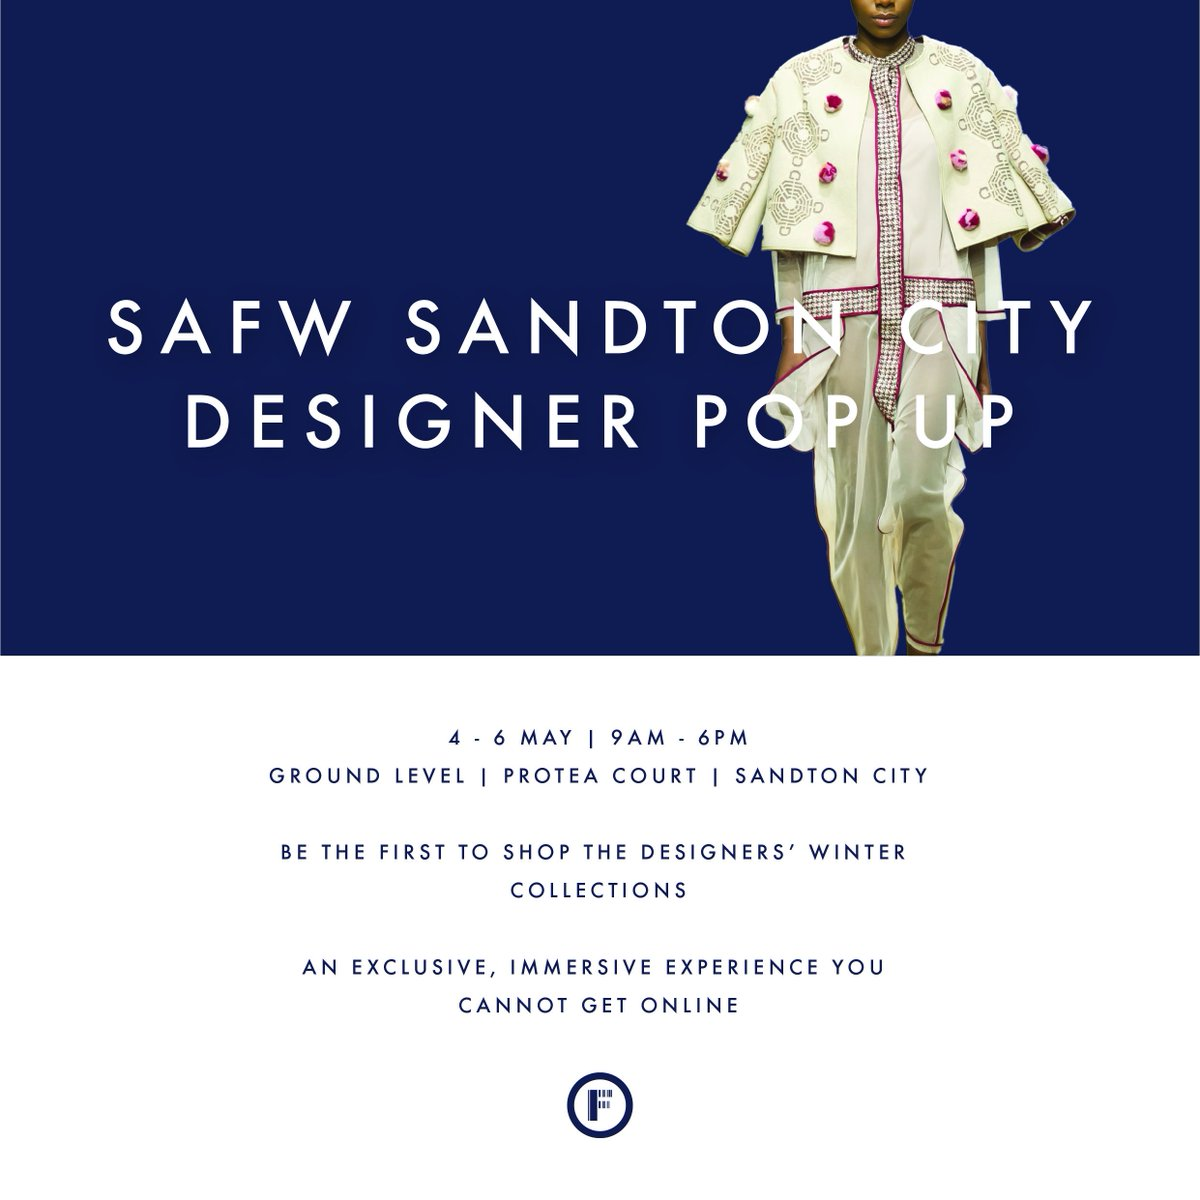 7d1fb302997 ... curated winter collections from 16 designer brands, the #SAFW  #SandtonCityDesignerPopUp is a fashion highlight, not to be missed! Shop up  a storm at the ...